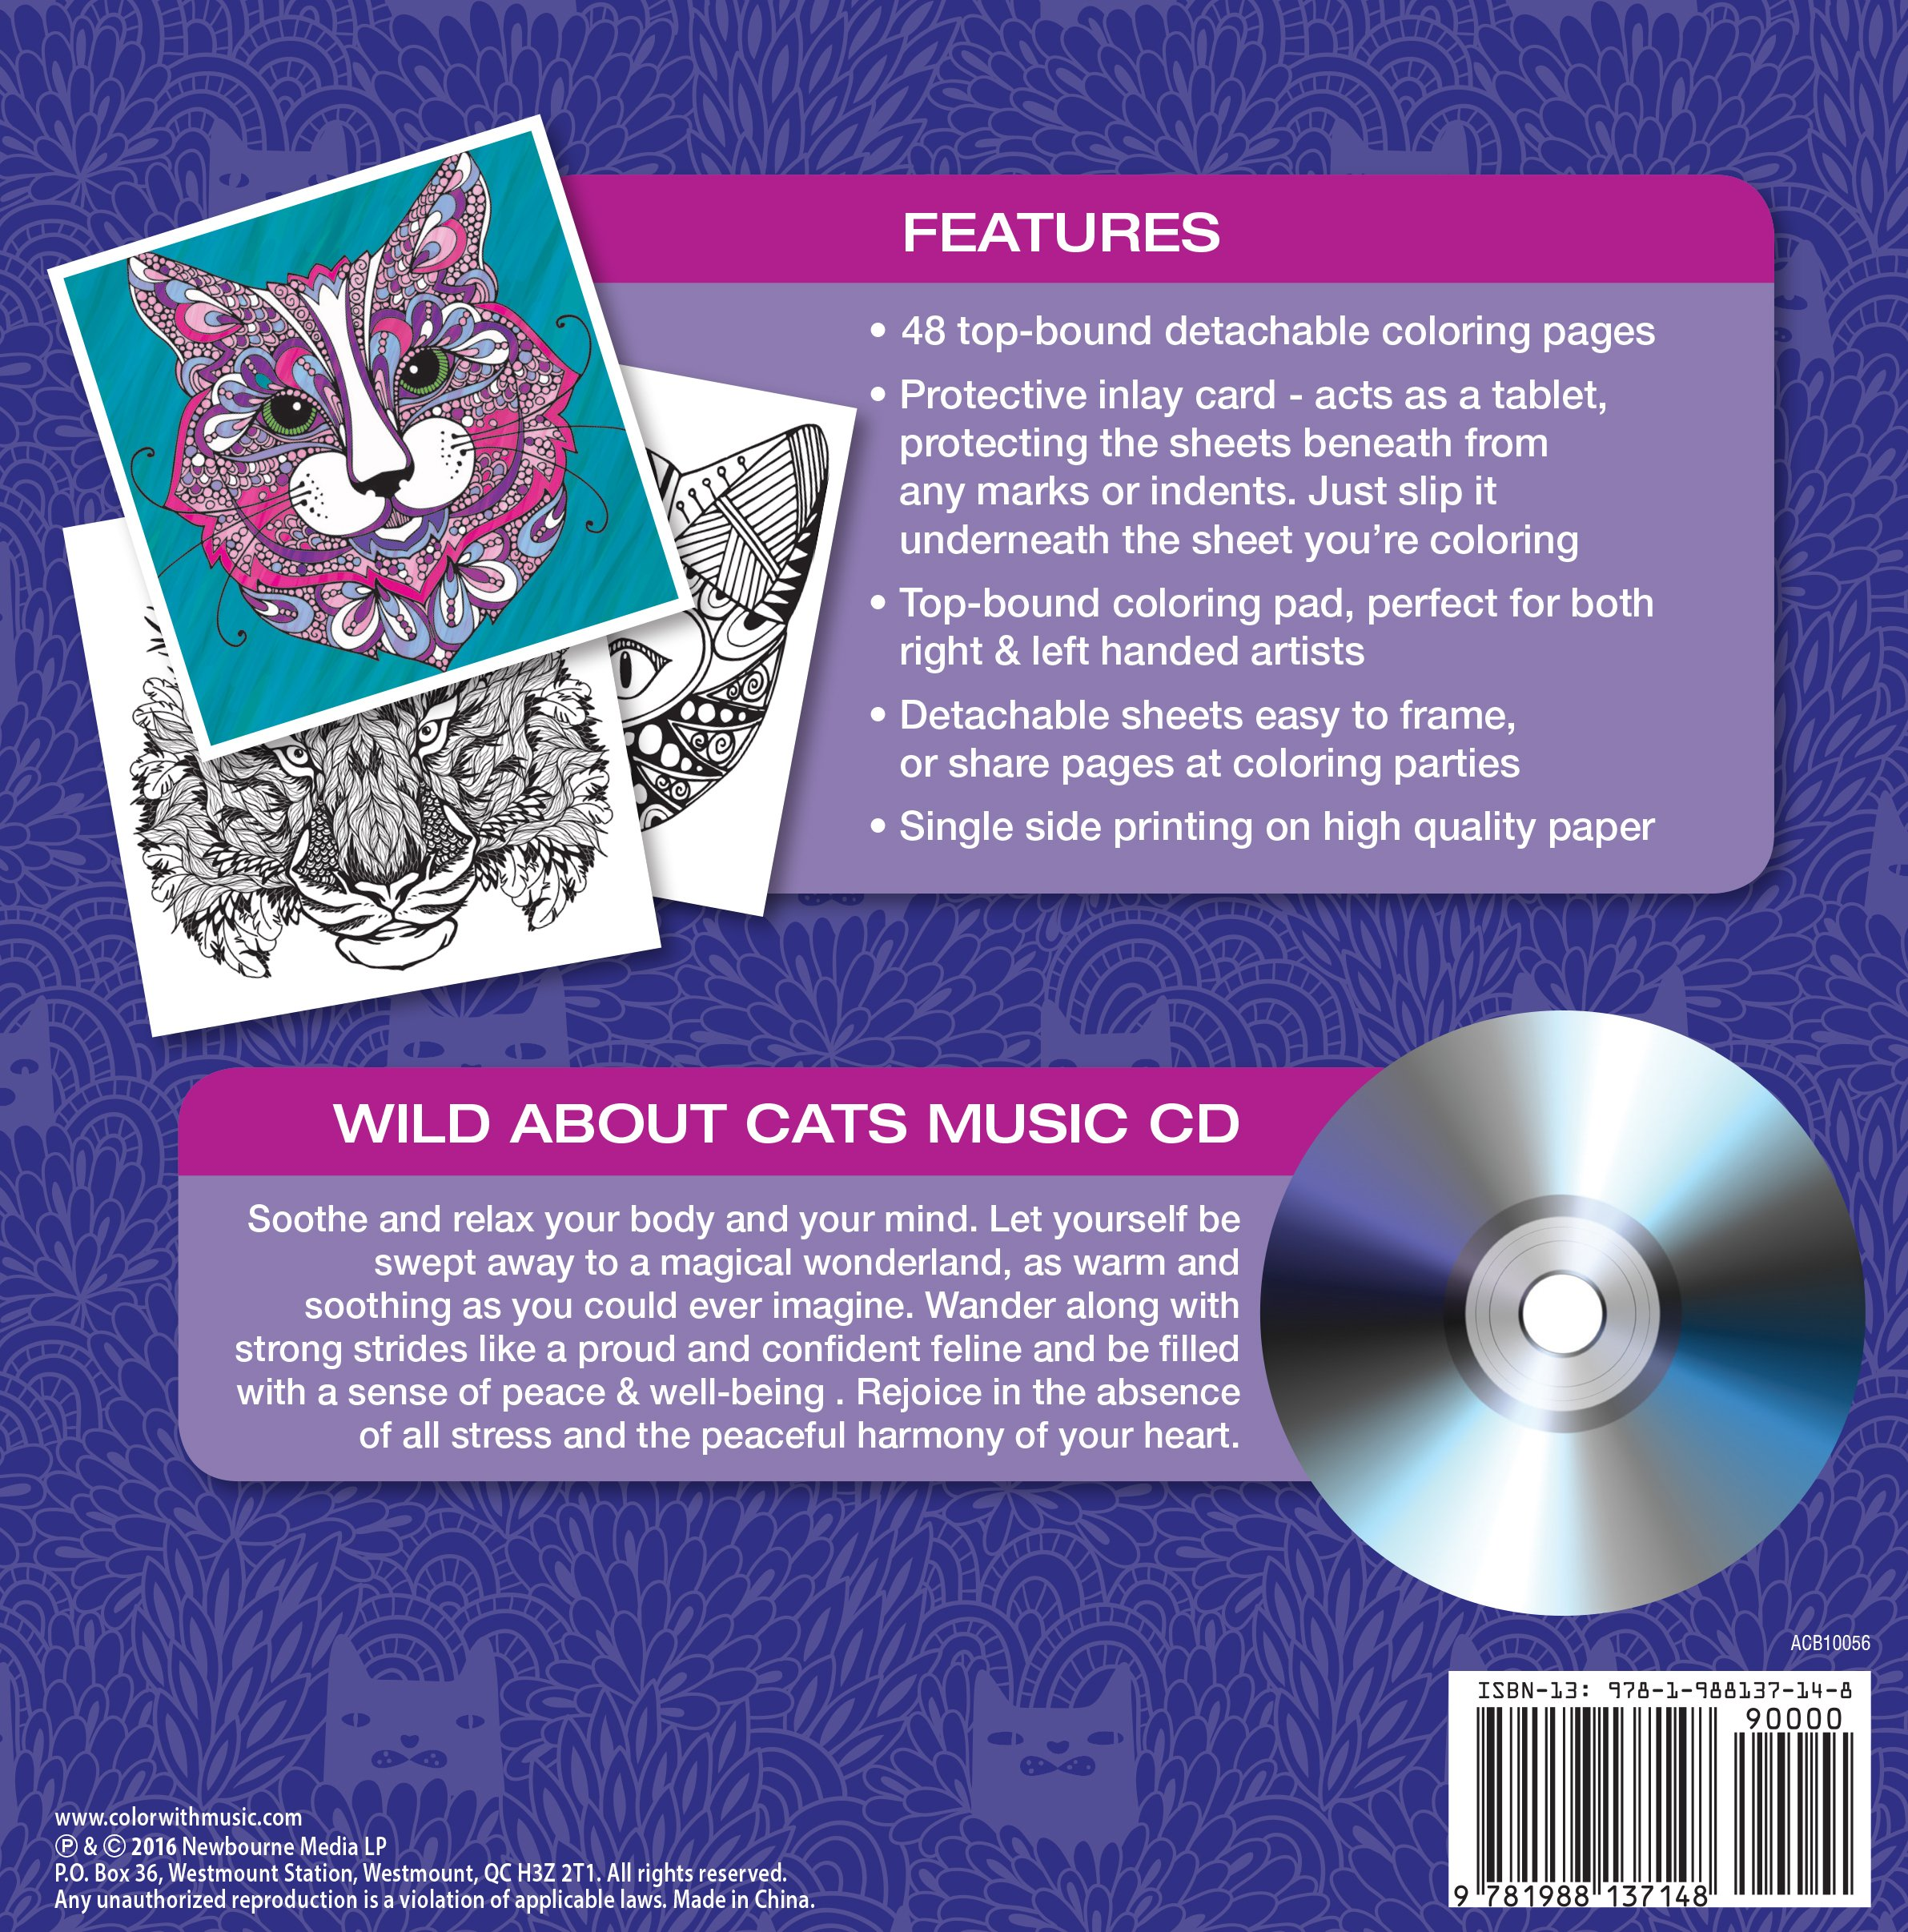 Color cats like - Amazon Com Wild About Cats Adult Coloring Book With Bonus Relaxation Music Cd Included Color With Music 9781988137148 Newbourne Media Books